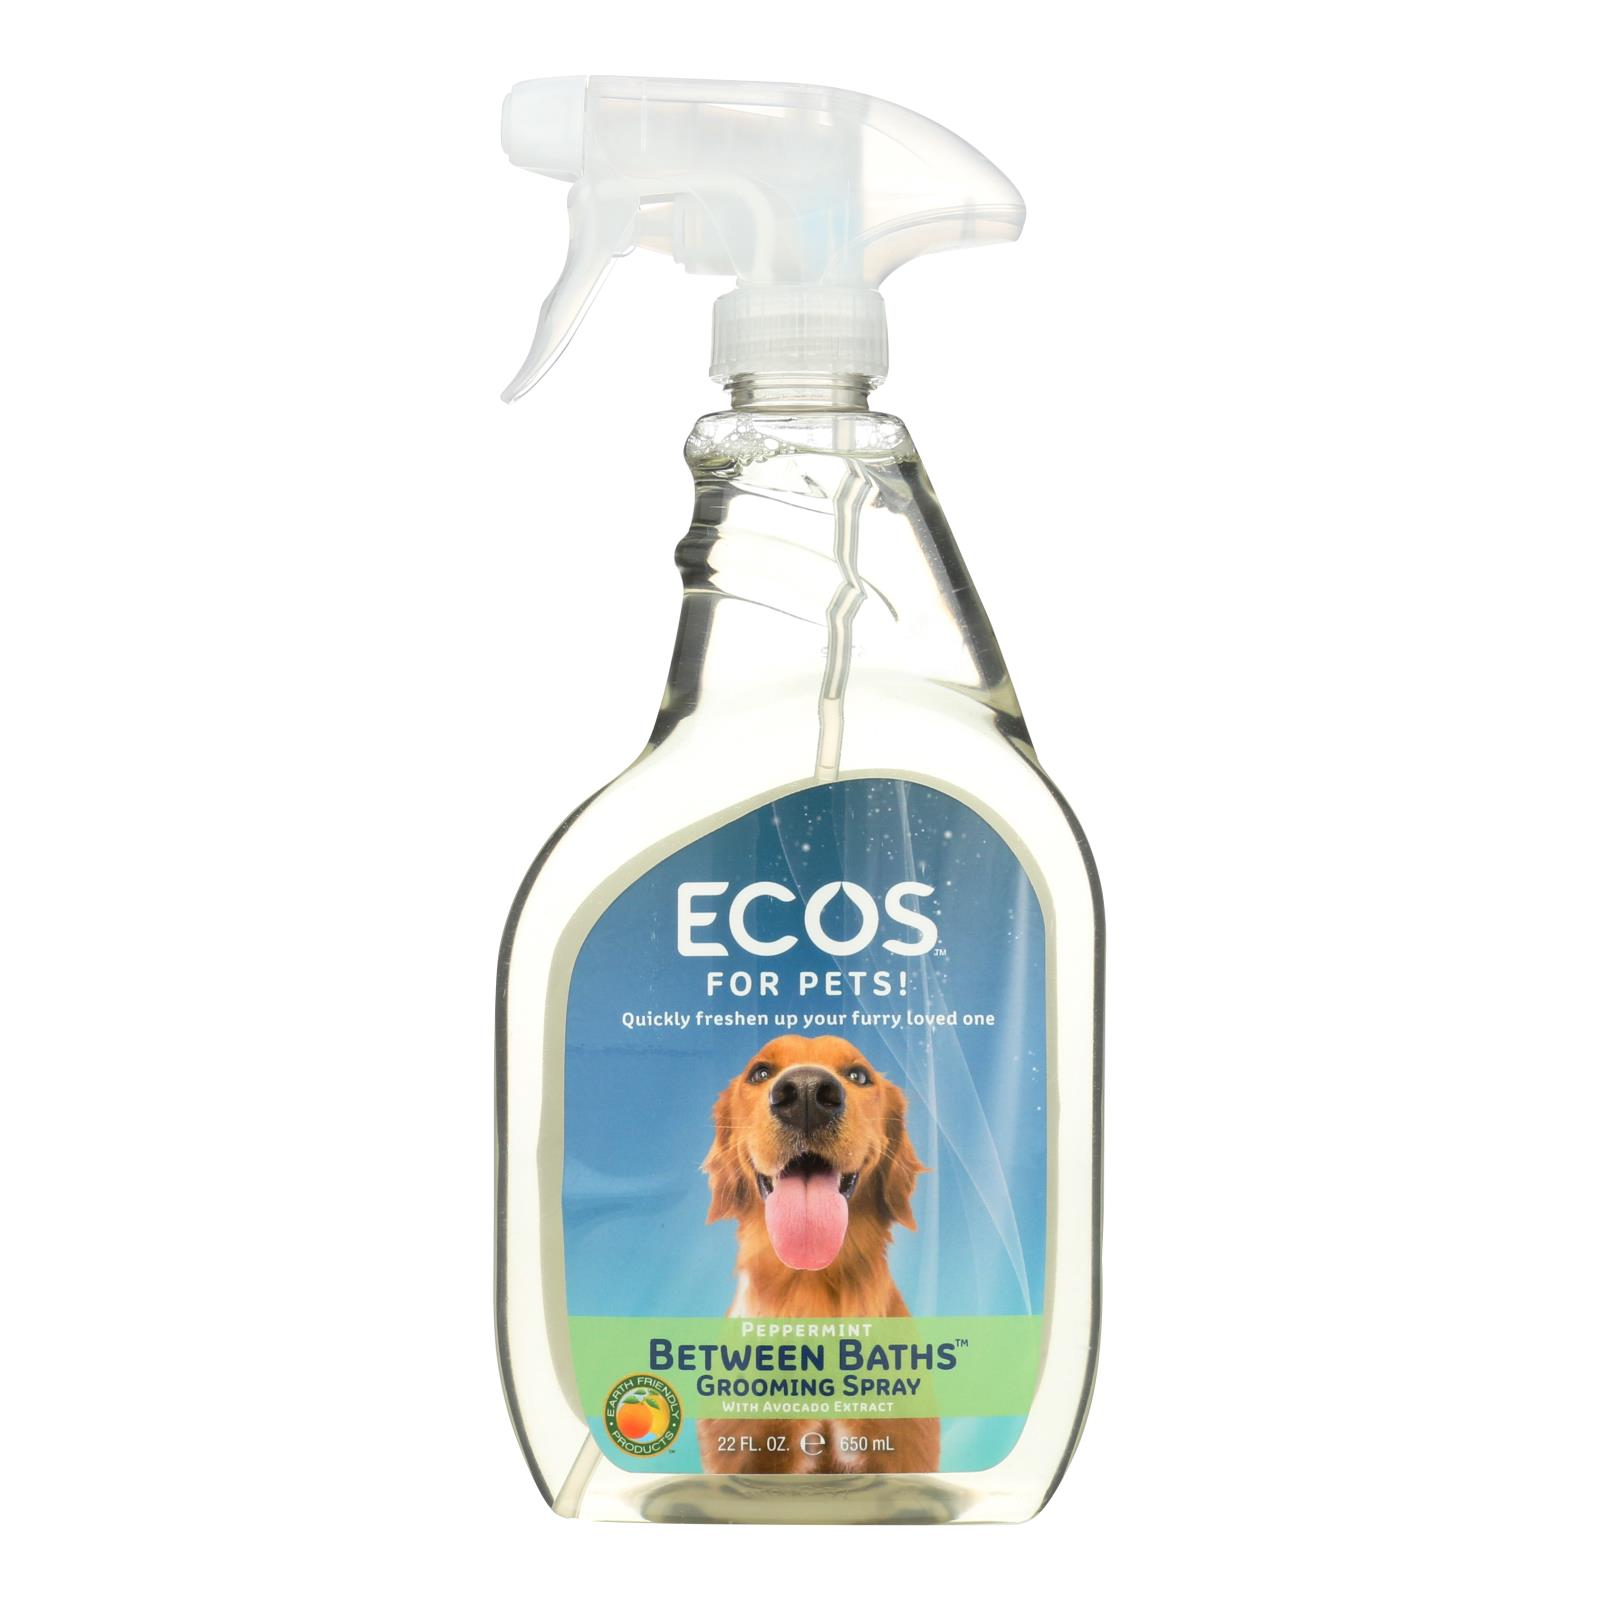 Ecos For Pets! Between Baths Grooming Spray  - Case of 6 - 22 OZ